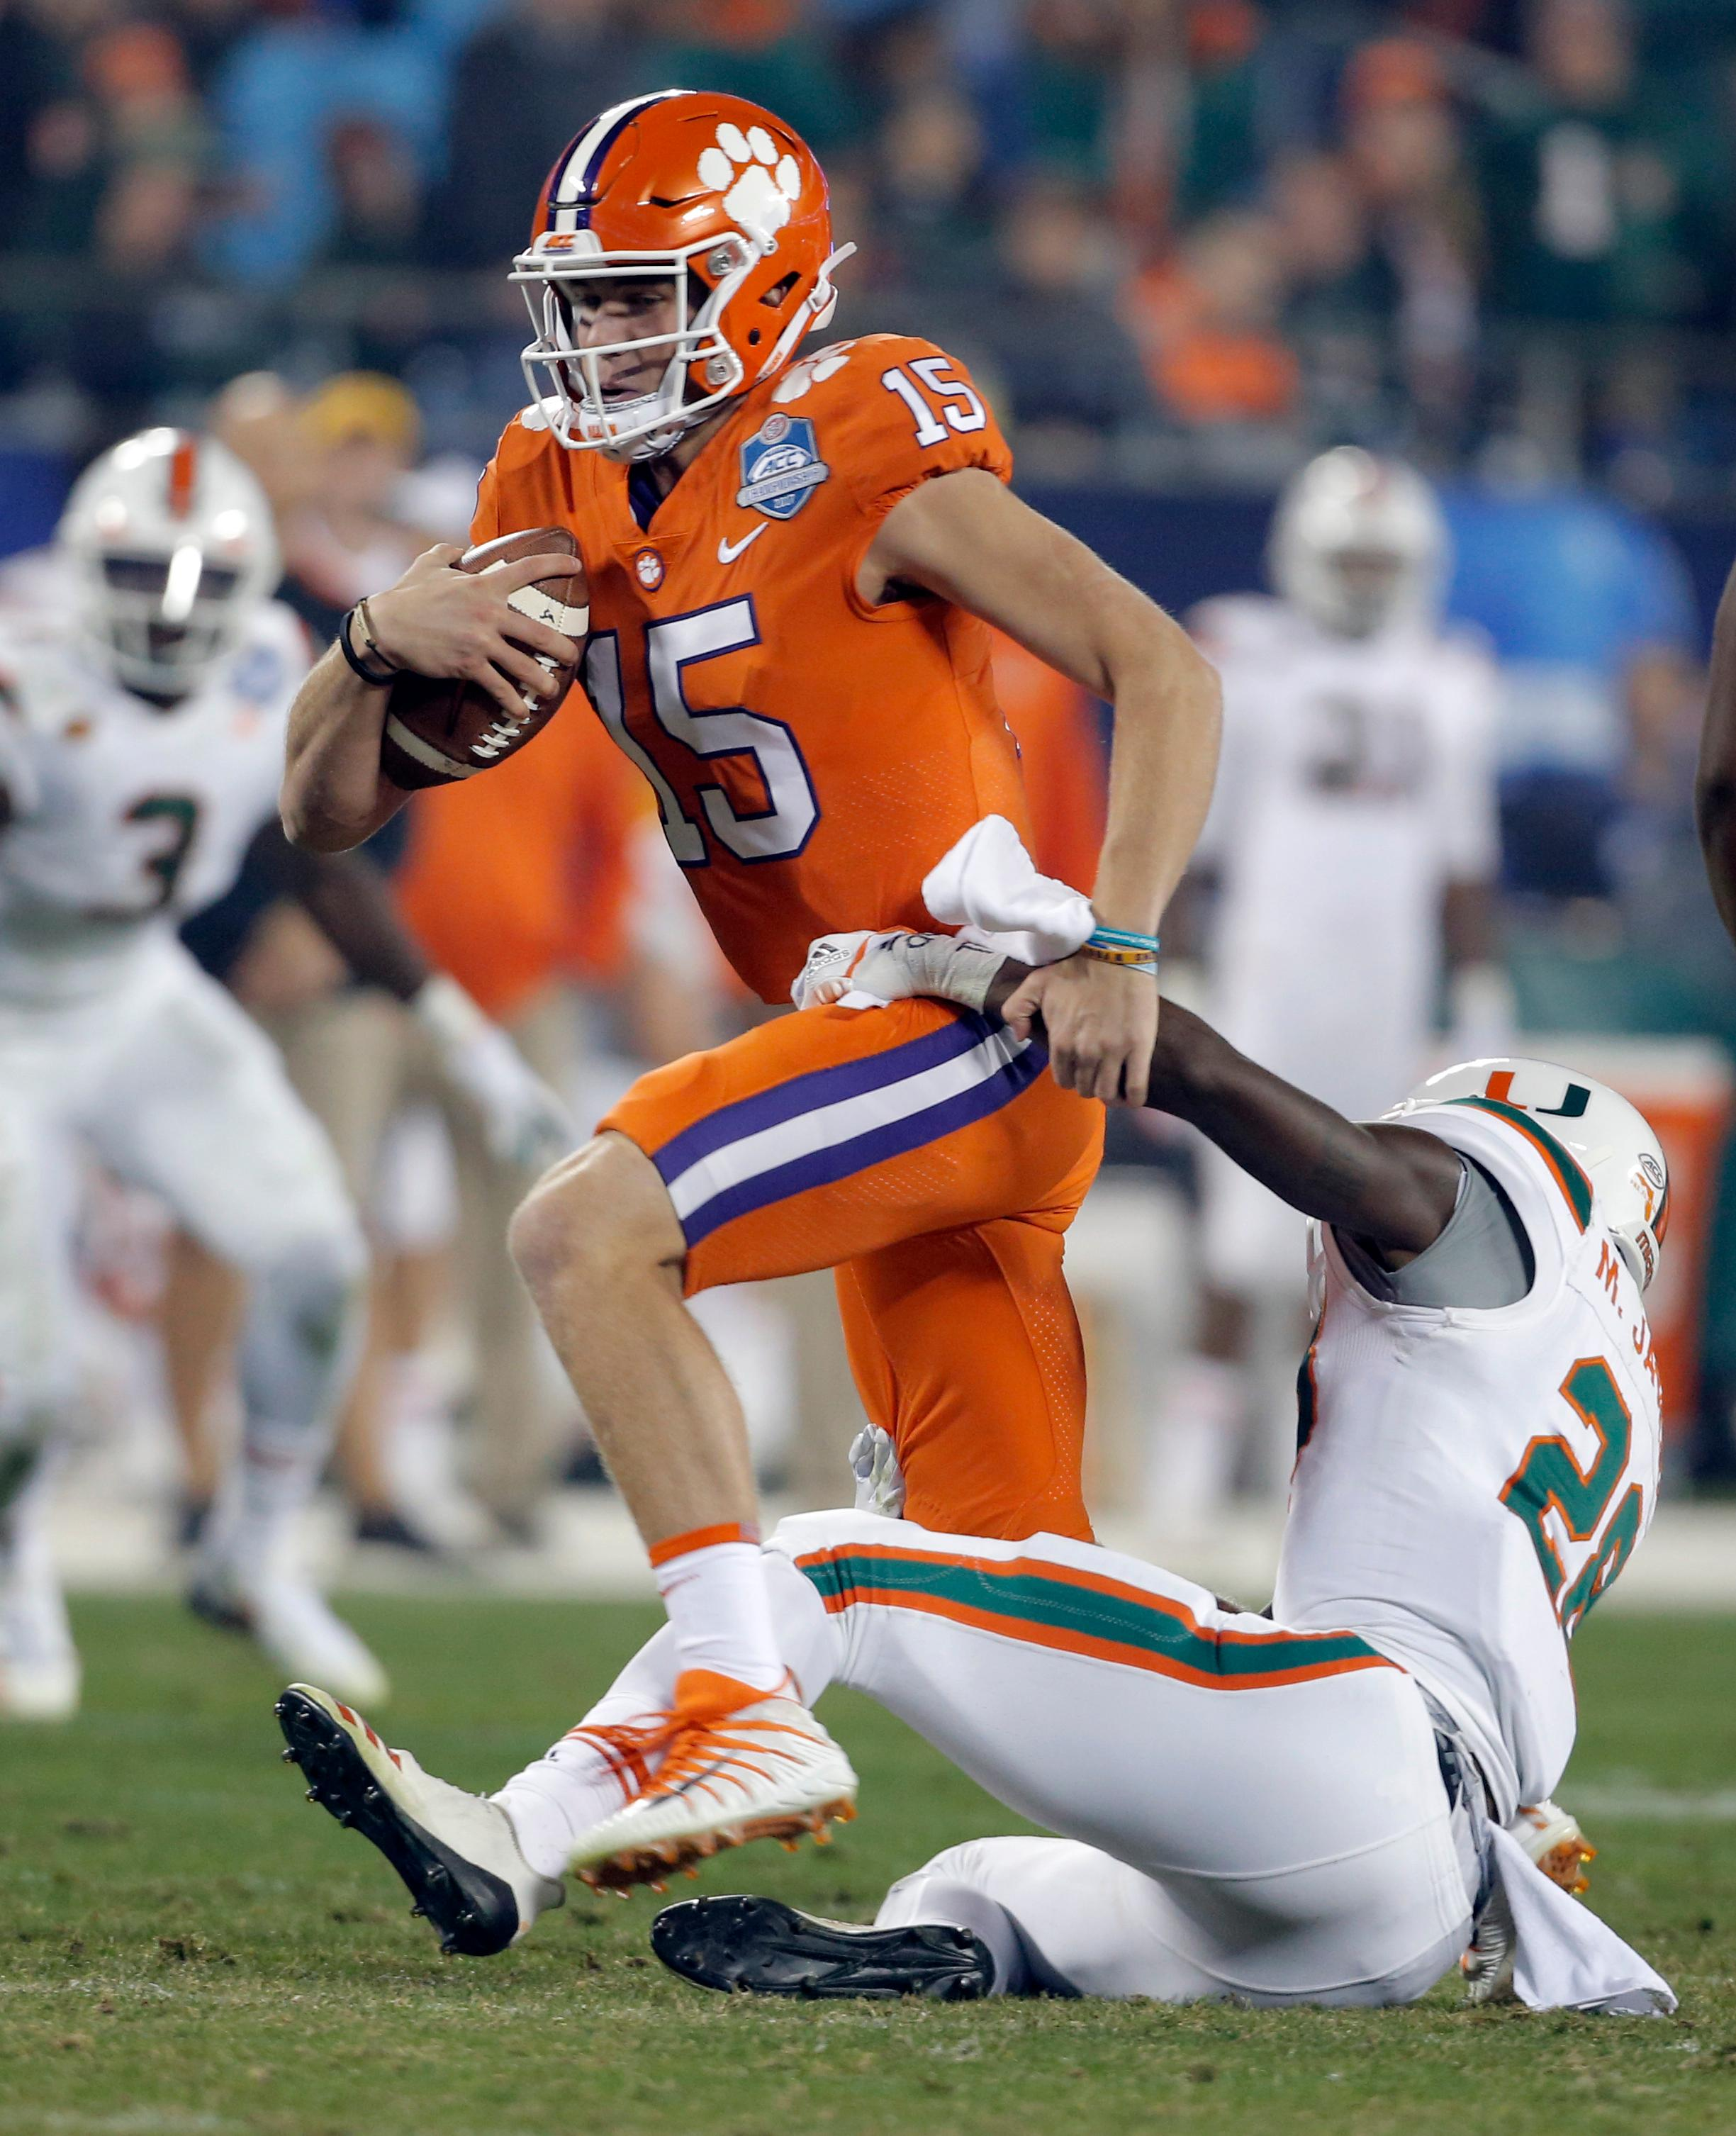 Clemson's Hunter Johnson (15) is sacked by Miami's Michael Jackson (28) during the second half of the Atlantic Coast Conference championship NCAA college football game in Charlotte, N.C., Saturday, Dec. 2, 2017. (AP Photo/Bob Leverone)